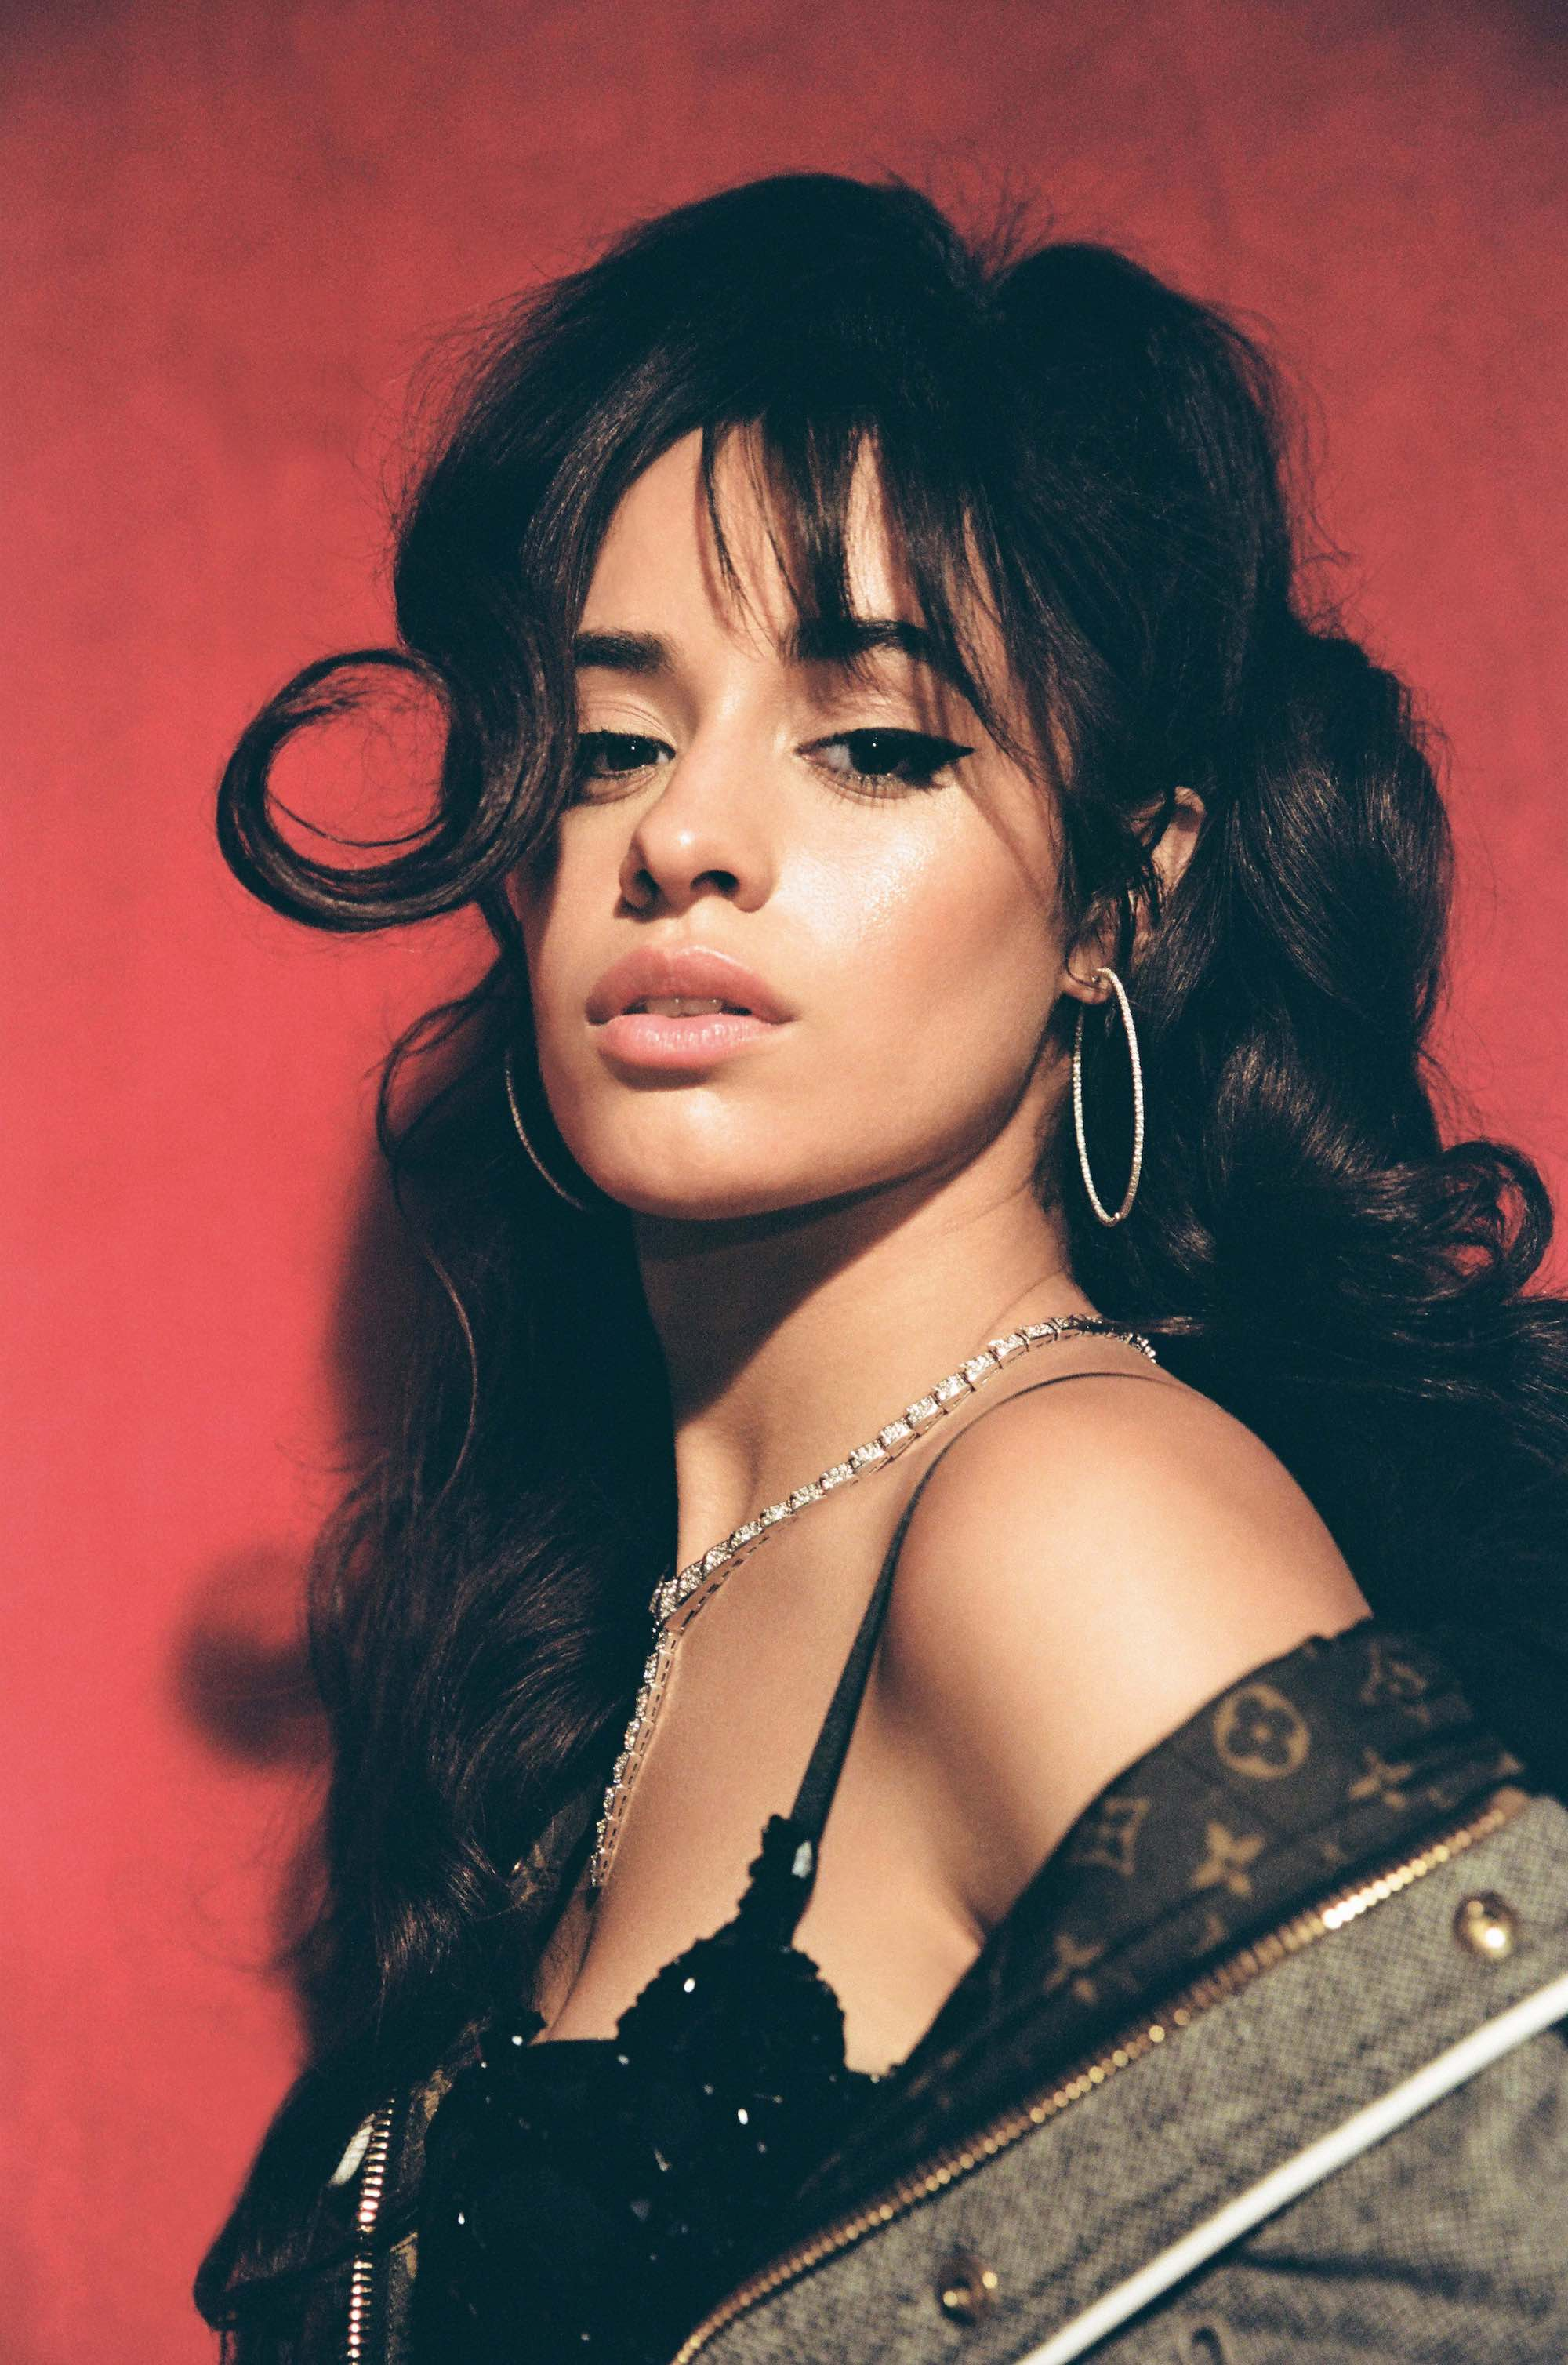 Wonderland Autumn 19 issue interview Camila Cabello hair flick